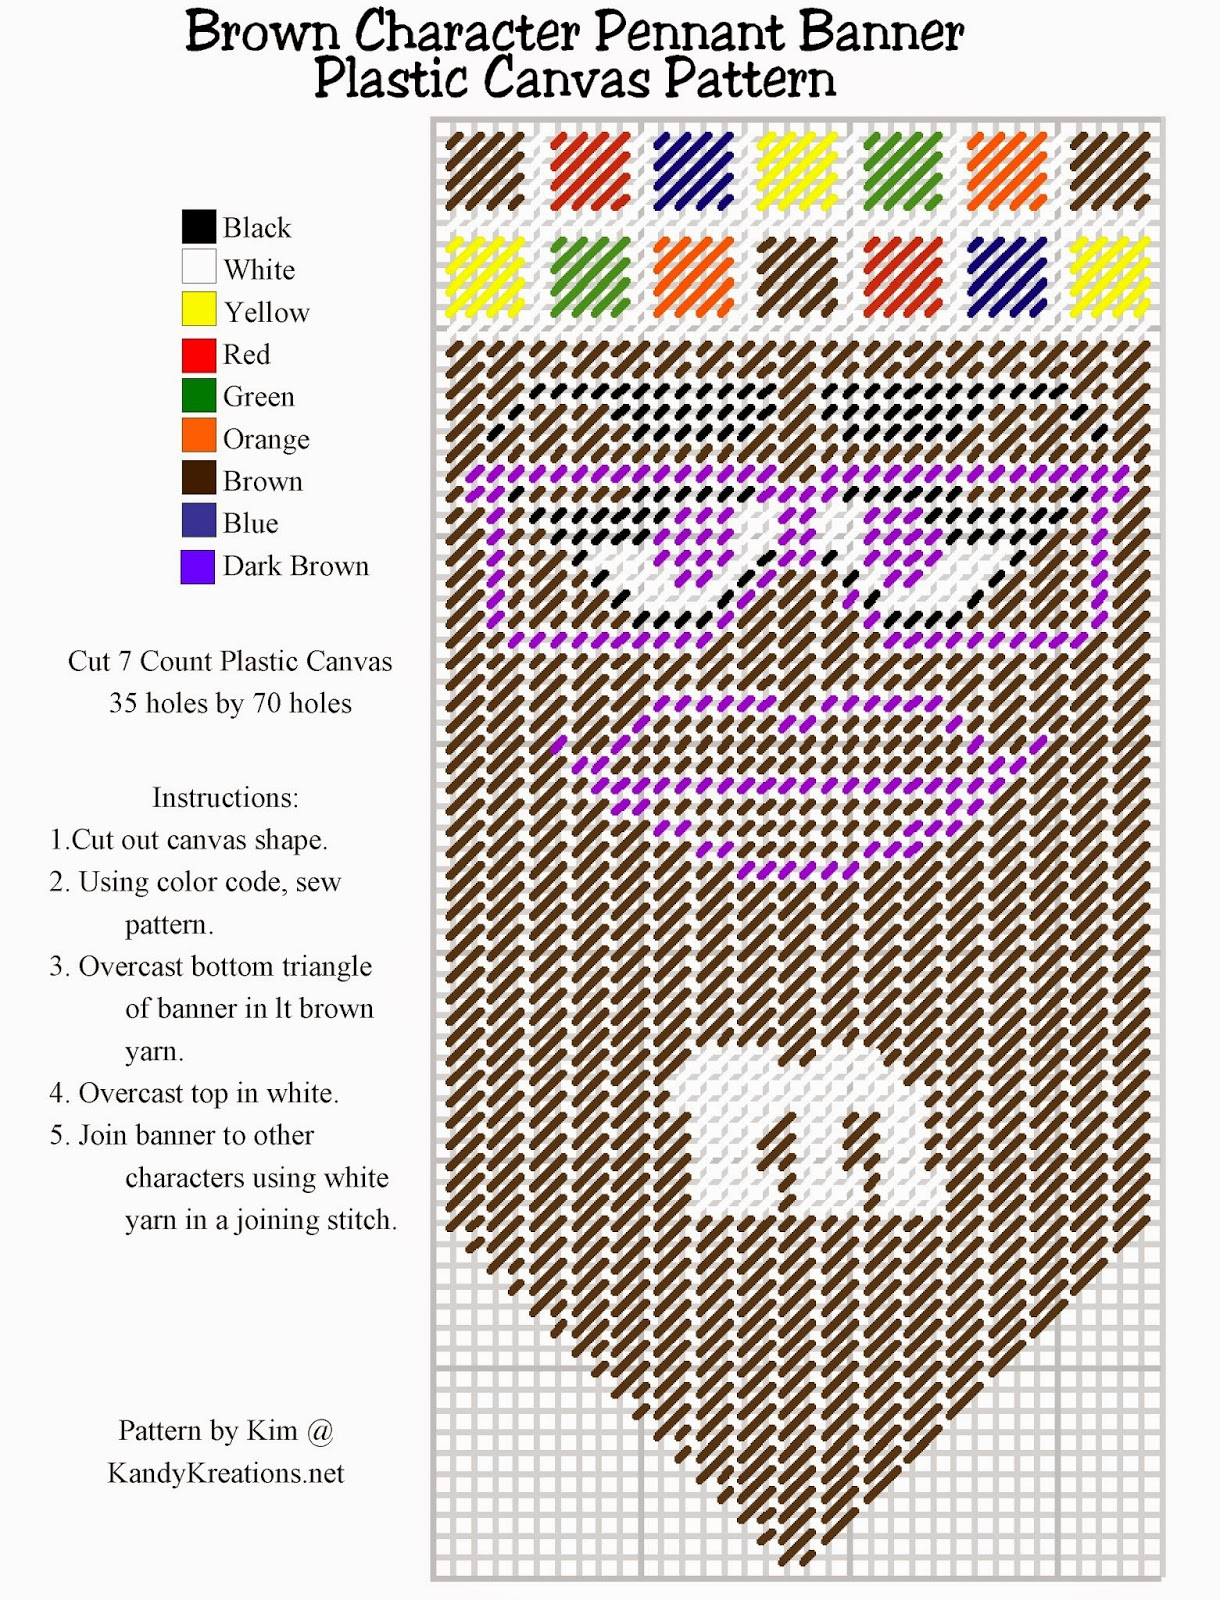 Make your own pennant banner with the brown M&M character using this Plastic canvas pattern freebie.  Simply right click and save this pattern to create your own party decoration or kitchen decor.